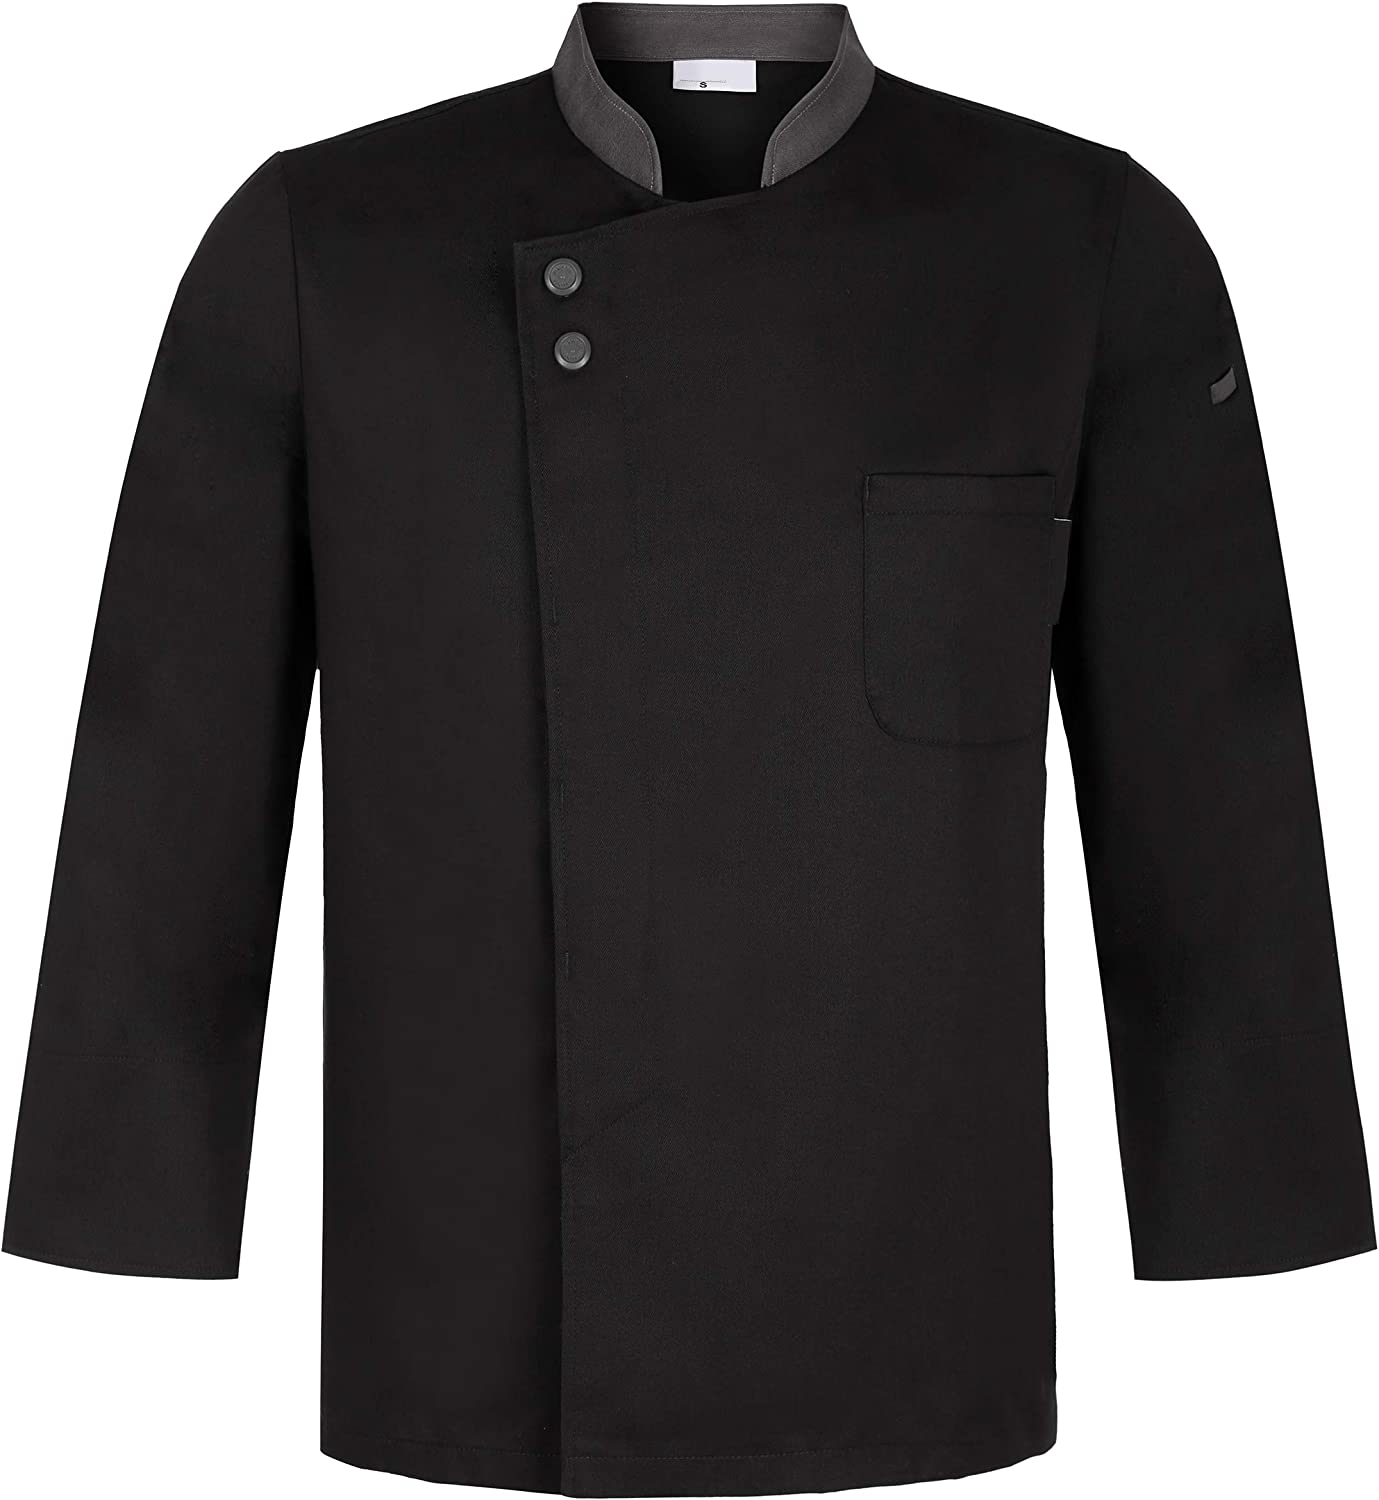 Chef OFFicial site Coat Jacket Uniform with Placket Front Max 45% OFF Concealed Grey Snap